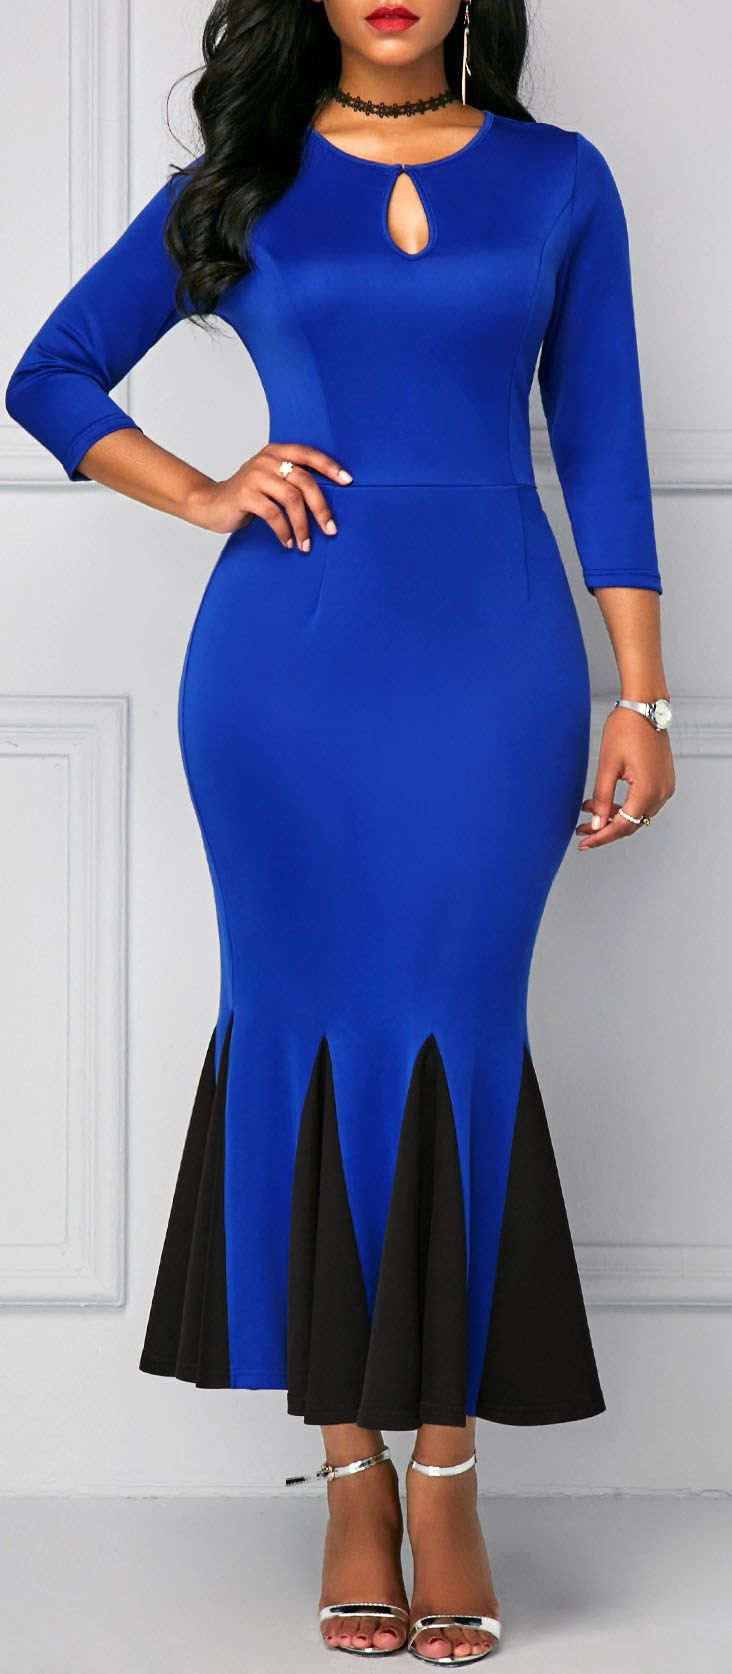 Peplum Hem Keyhole Neckline Royal Blue Dress.